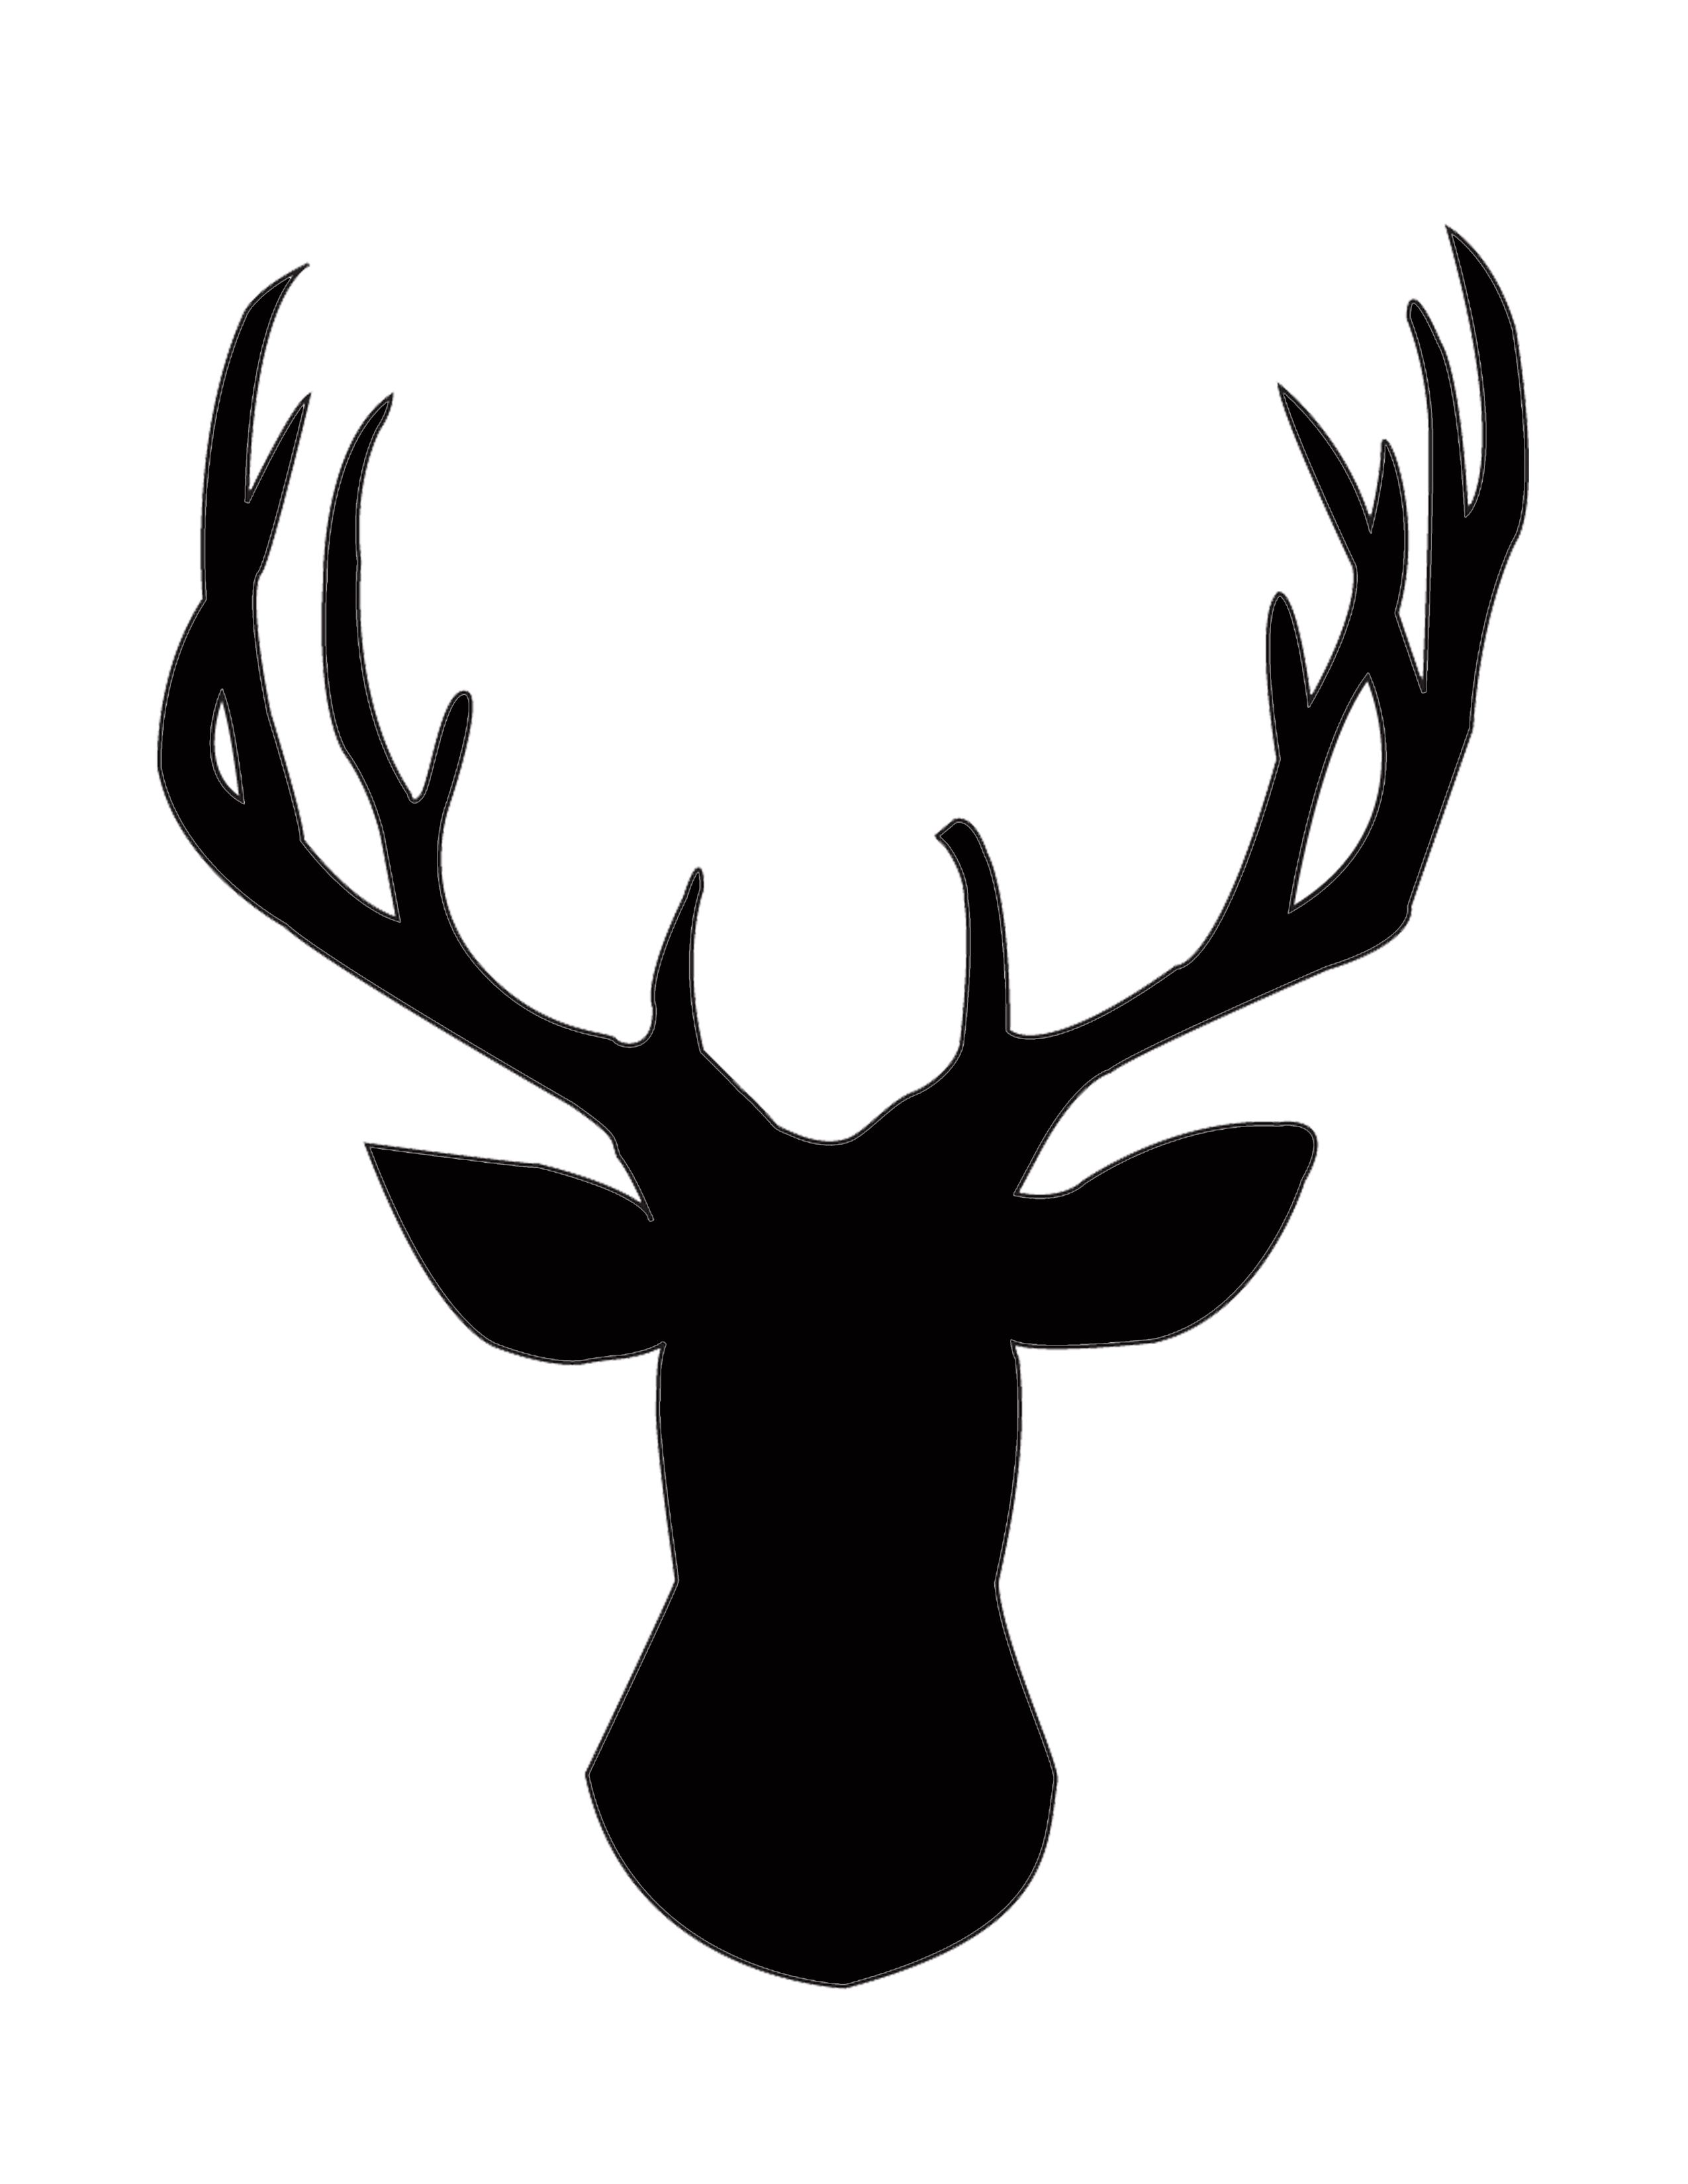 2550x3300 Diy Gold Foil Deer Head Silhouette Deer Head Silhouette, Free